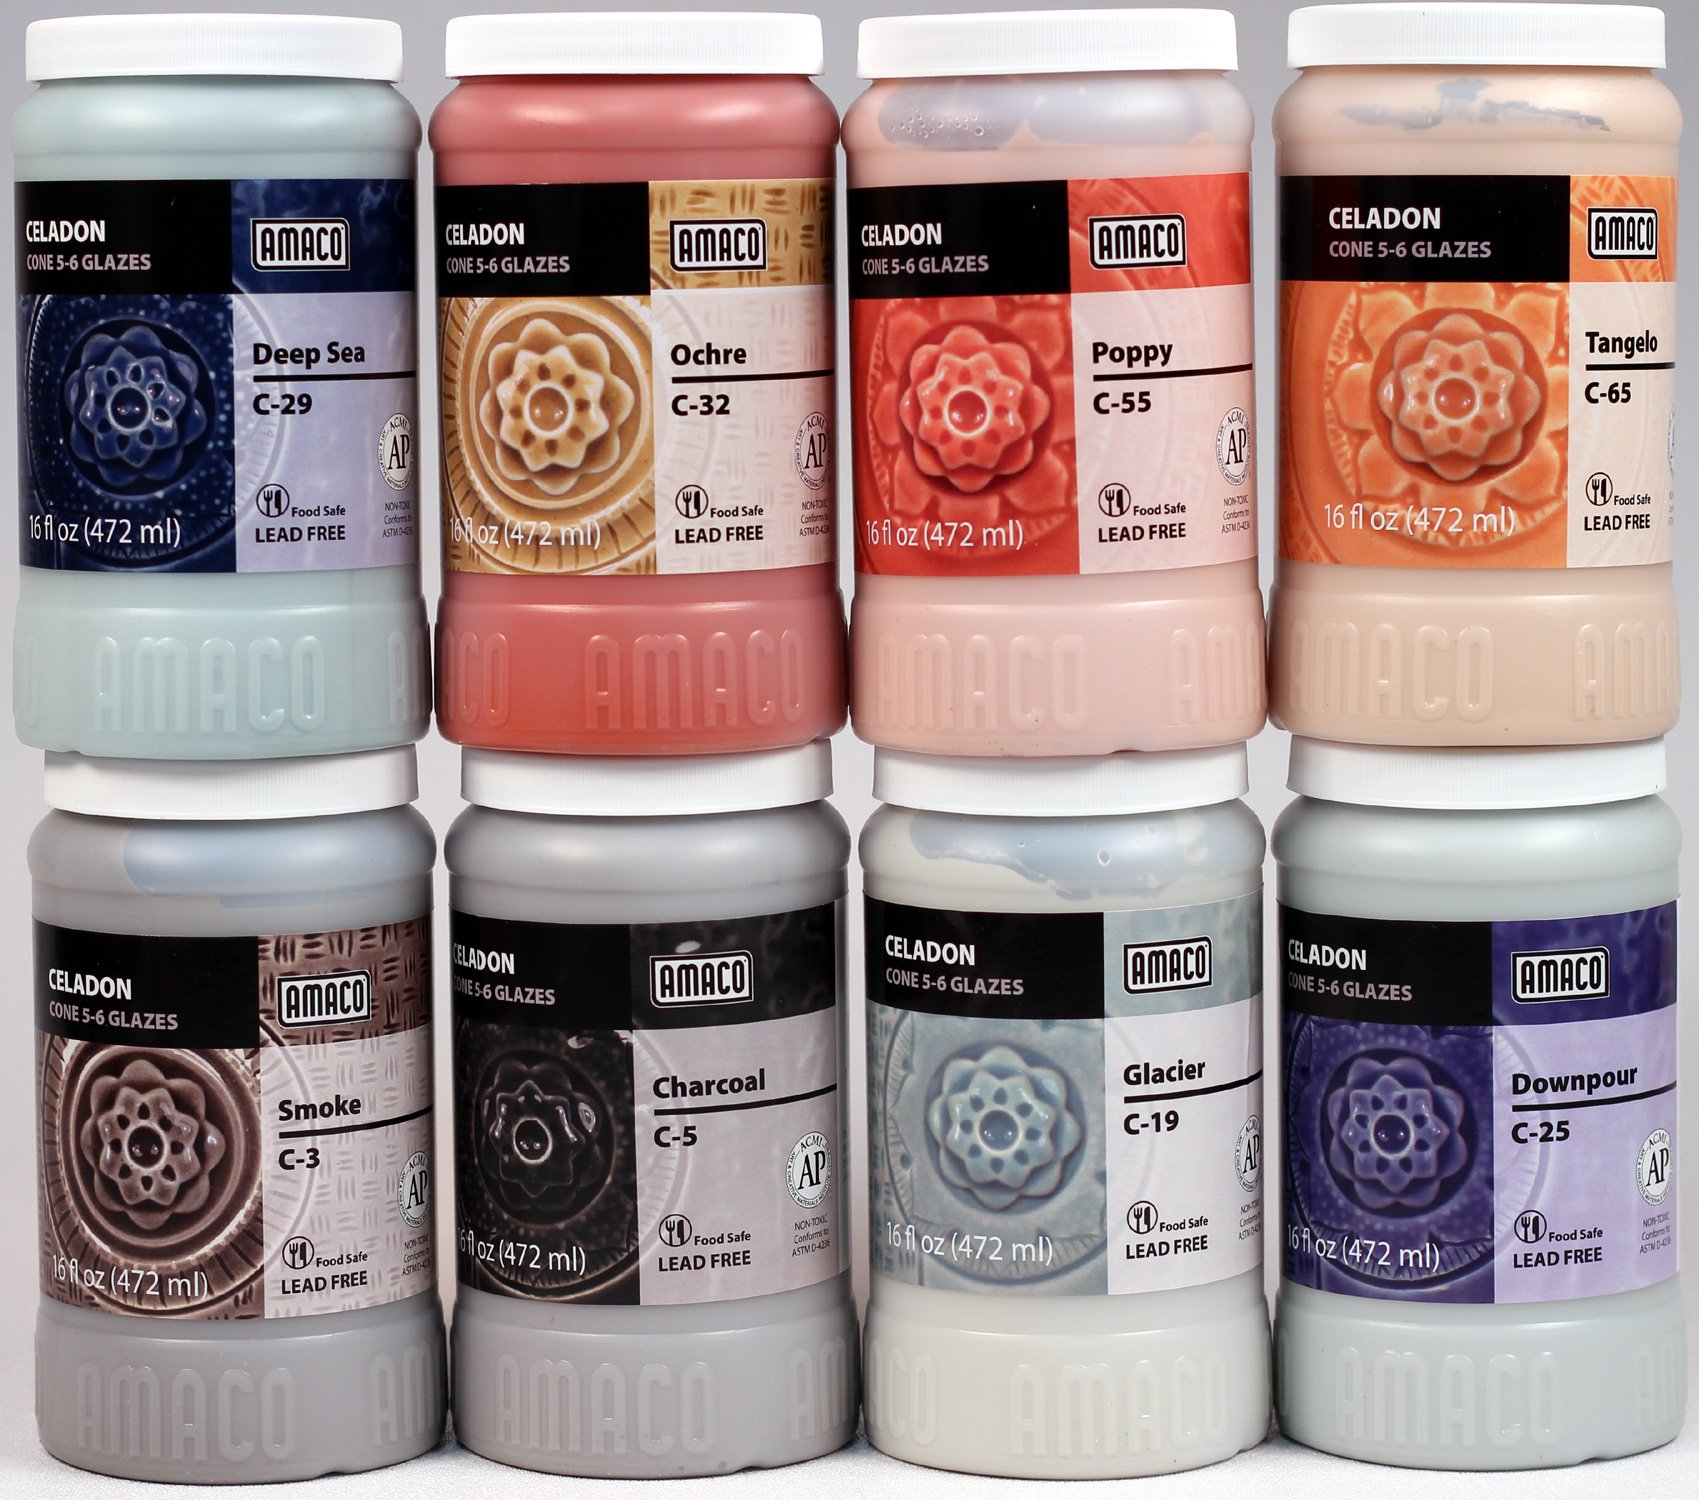 Amaco Celadon Hi Fire (Cone5-6) Glazes For Ceramics -Set of All 8 New 2018 Colors in 16 Ounce Pint Jars